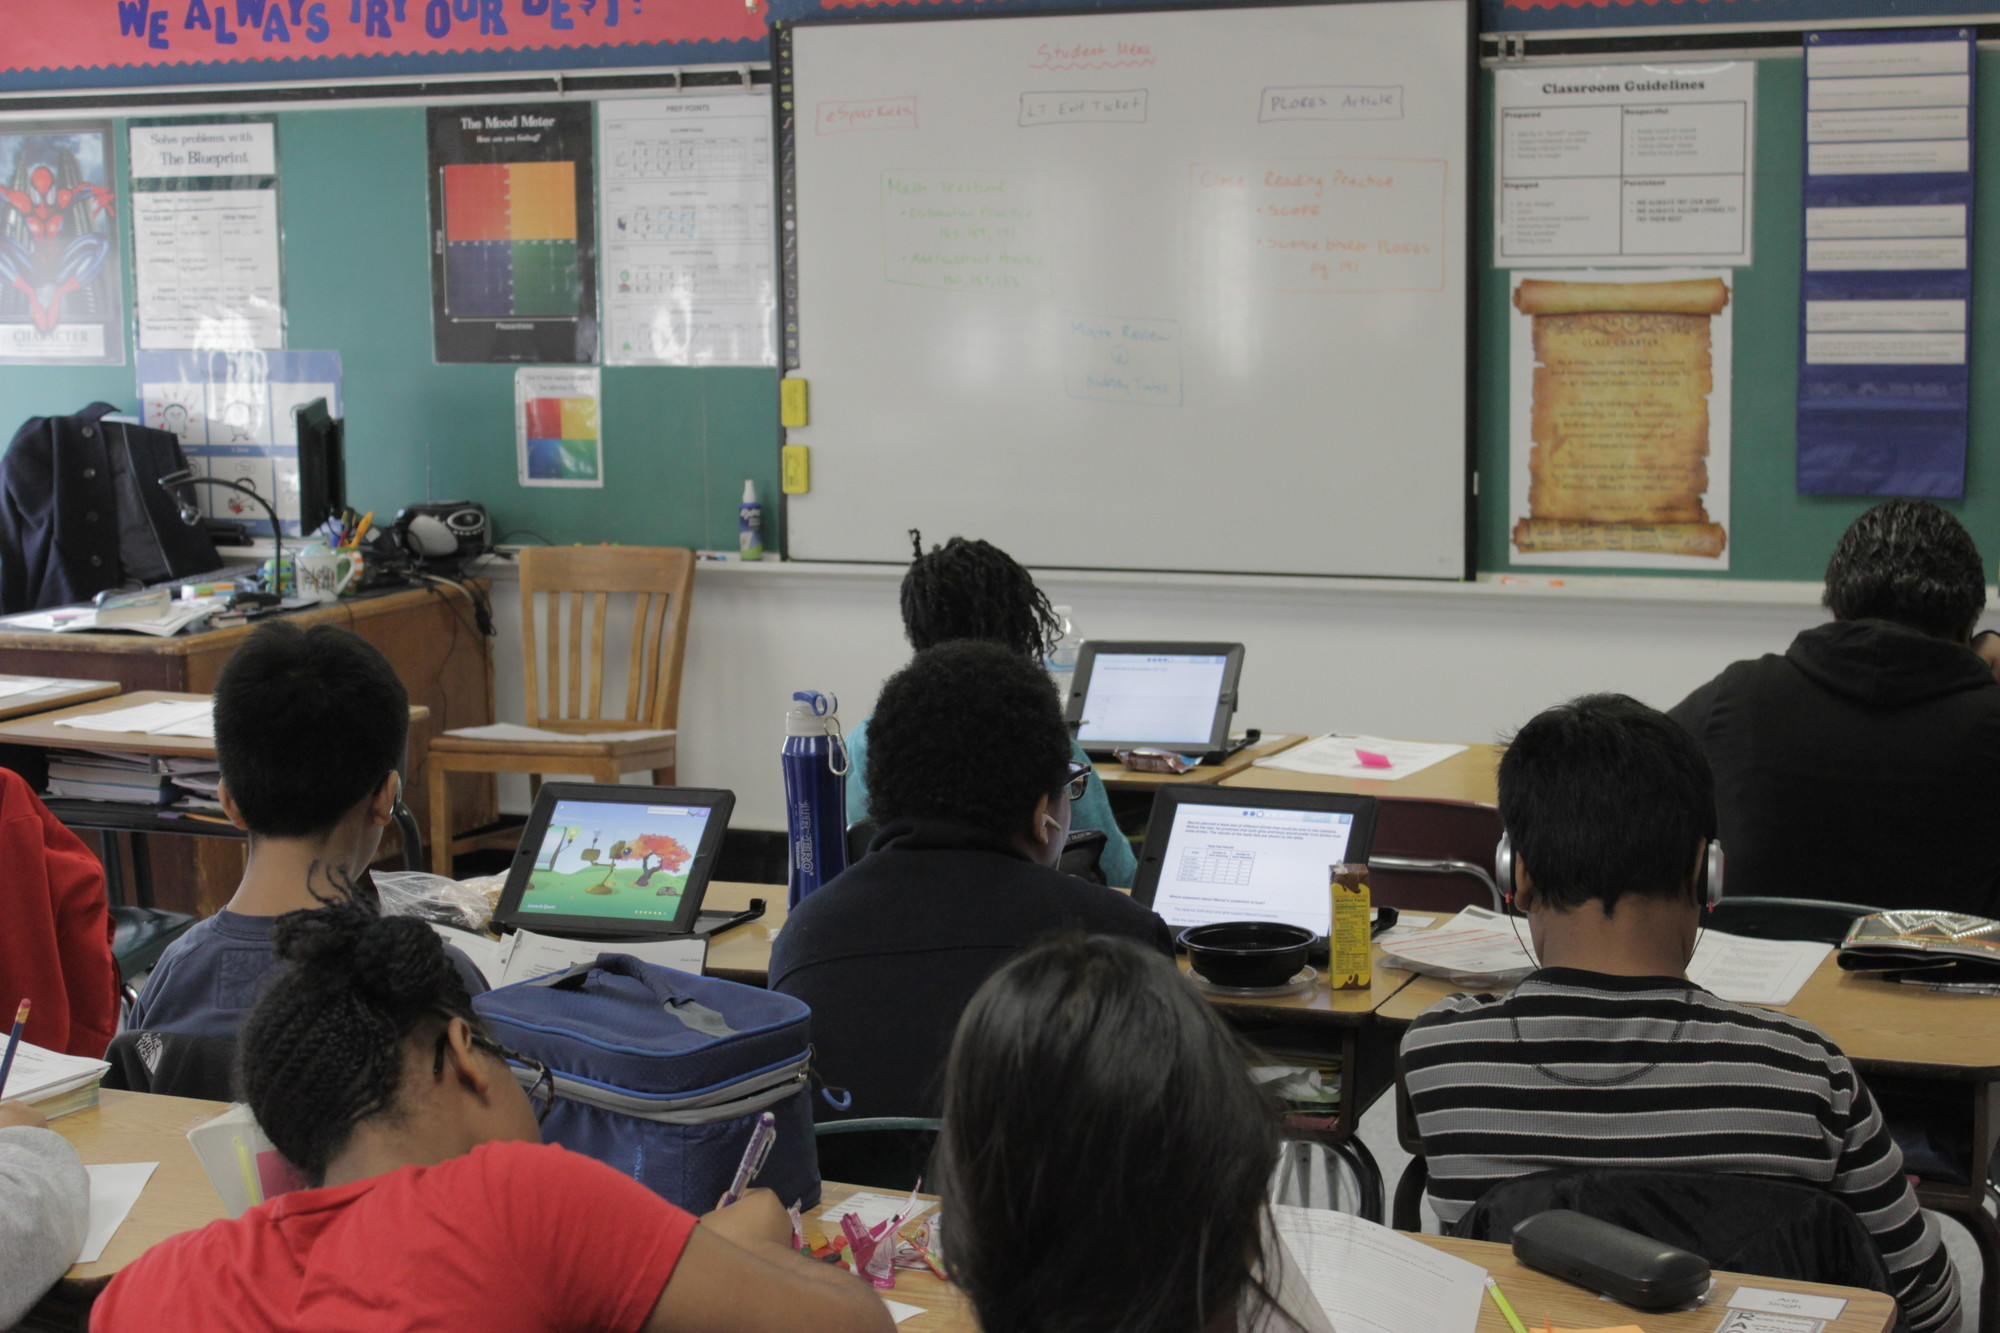 A classroom of students used iPad-based learning software at the Shaw Avenue School on Dec. 10.